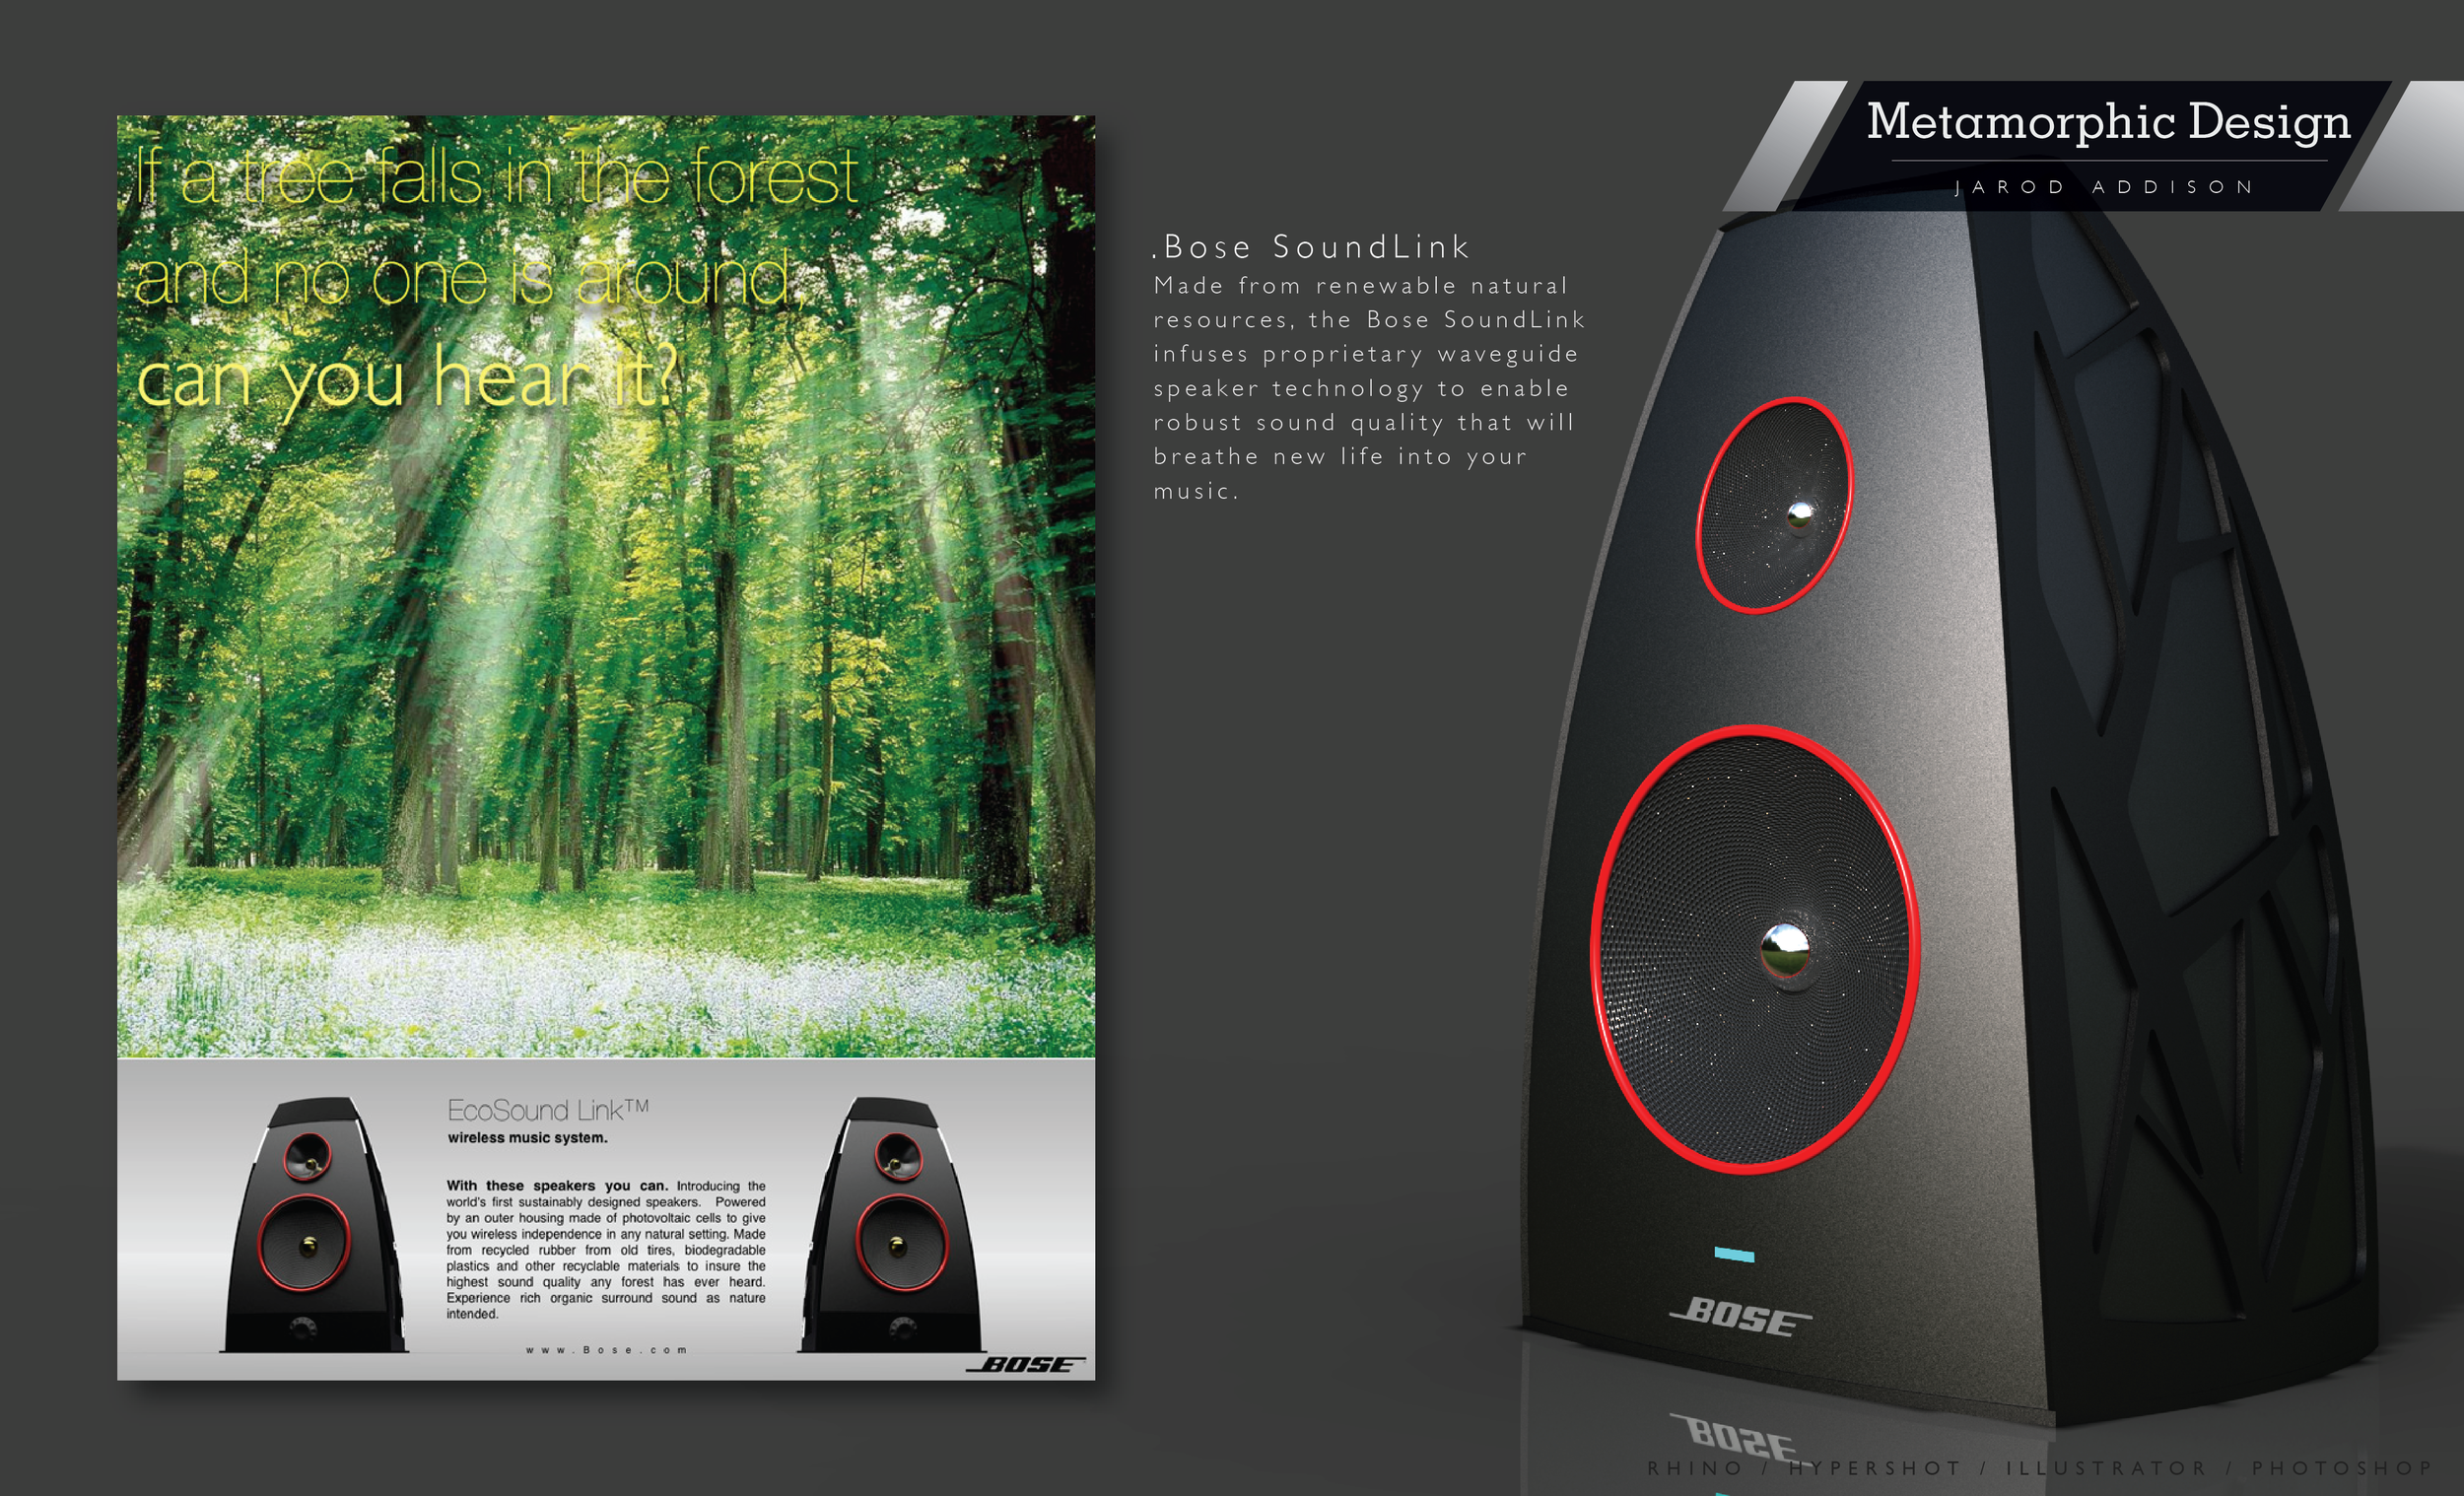 xDRAFTx_soundlink layout-04.png